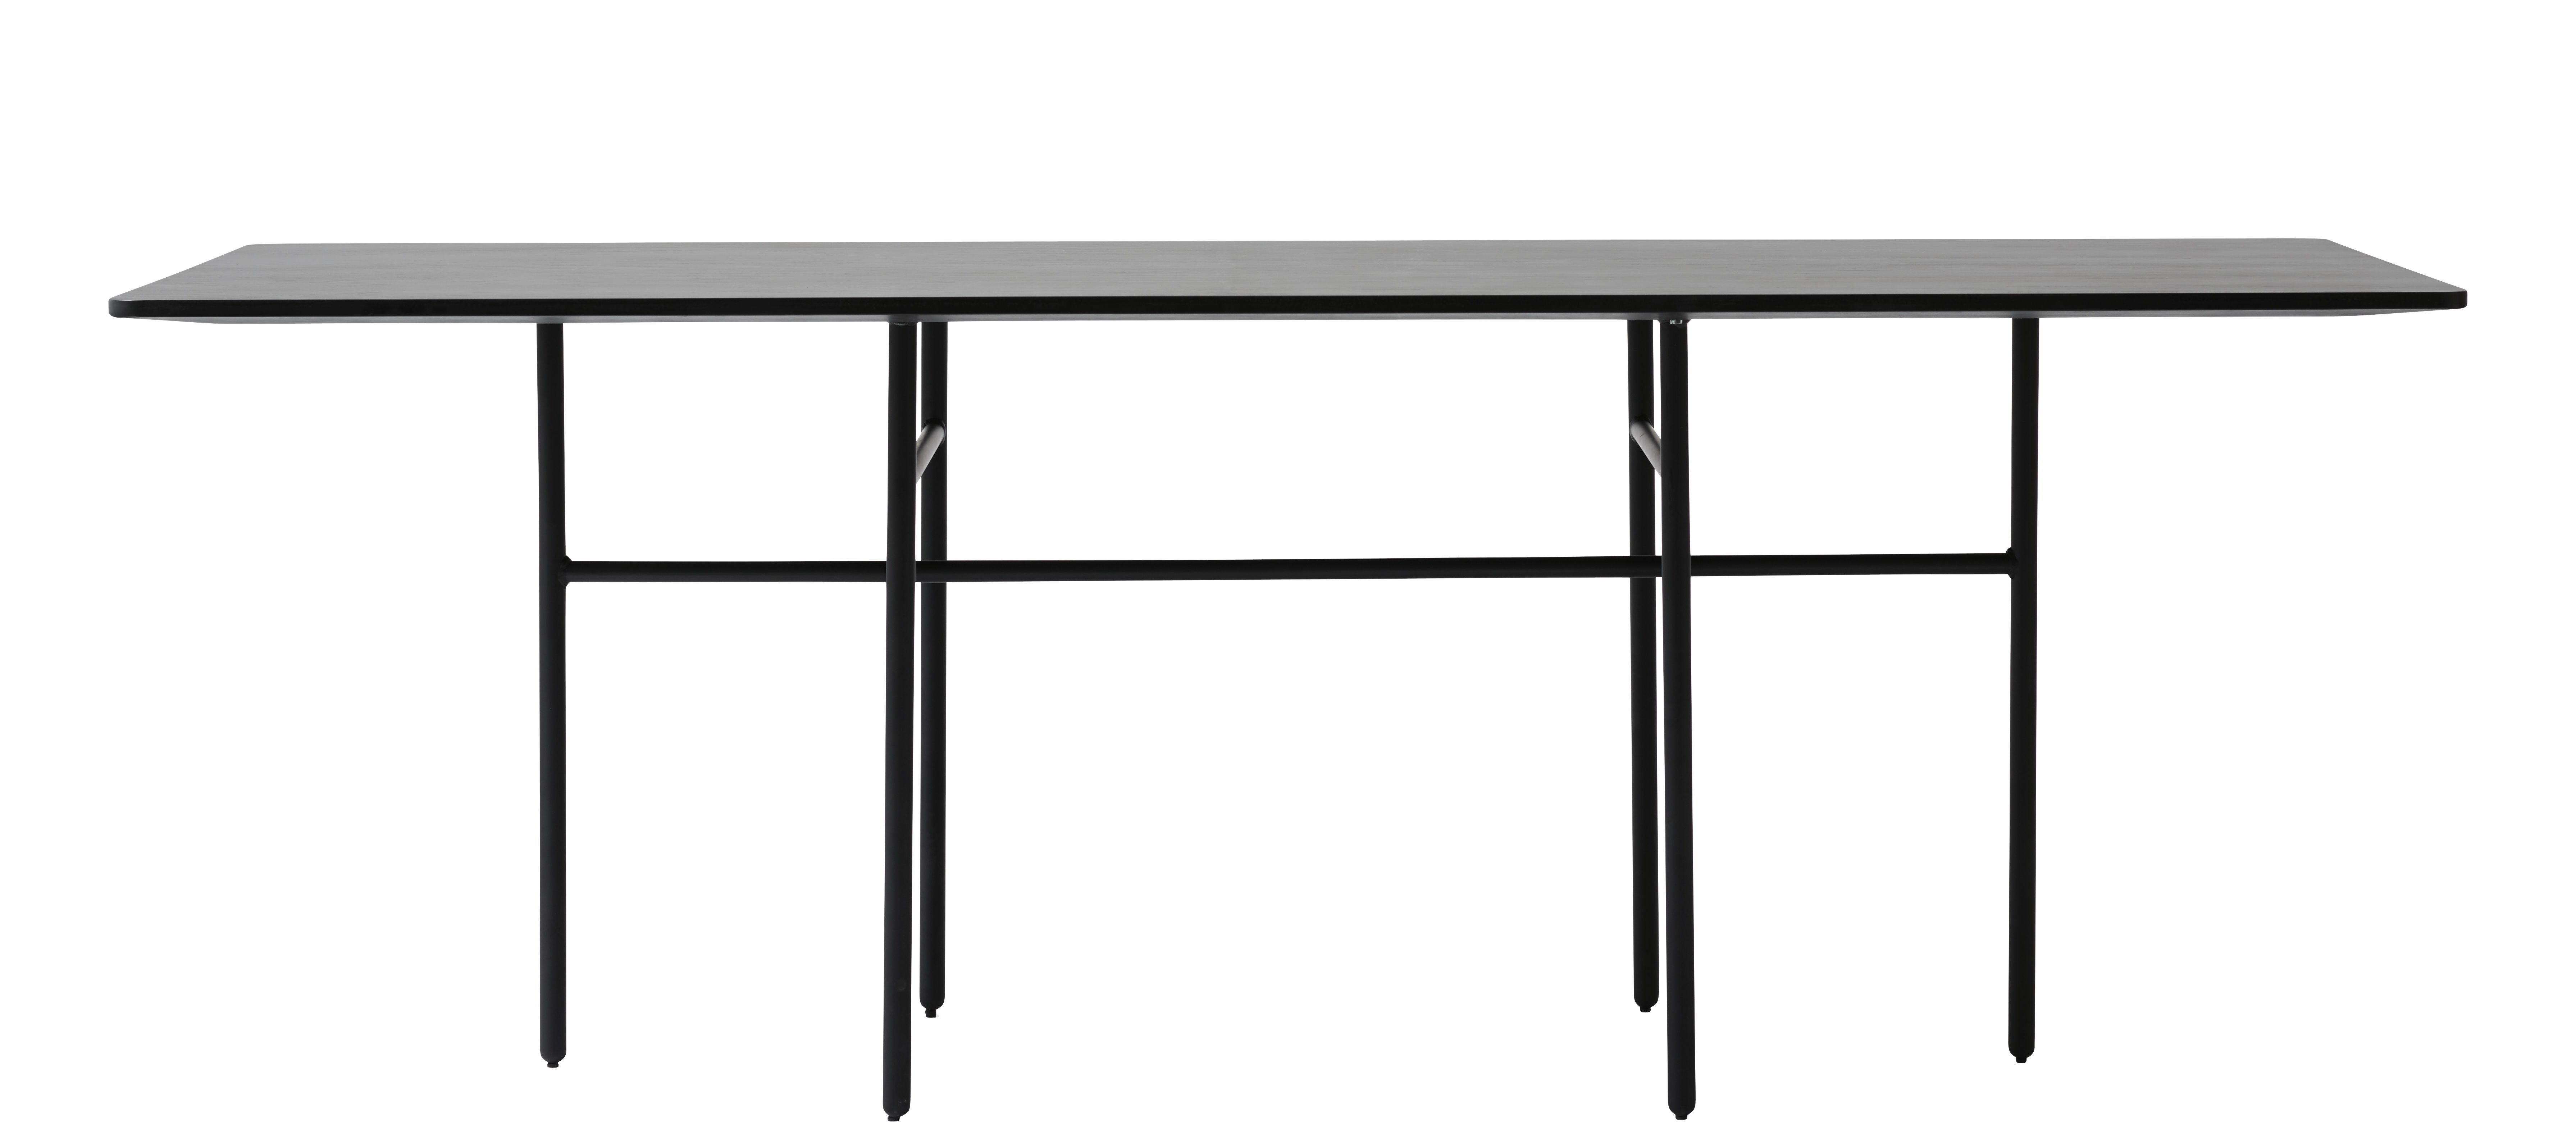 Furniture - Dining Tables - Snaregade Rectangular table - Rectangular - 200 x 90 cm by Menu - Black - Lacquered steel, Oak plywood